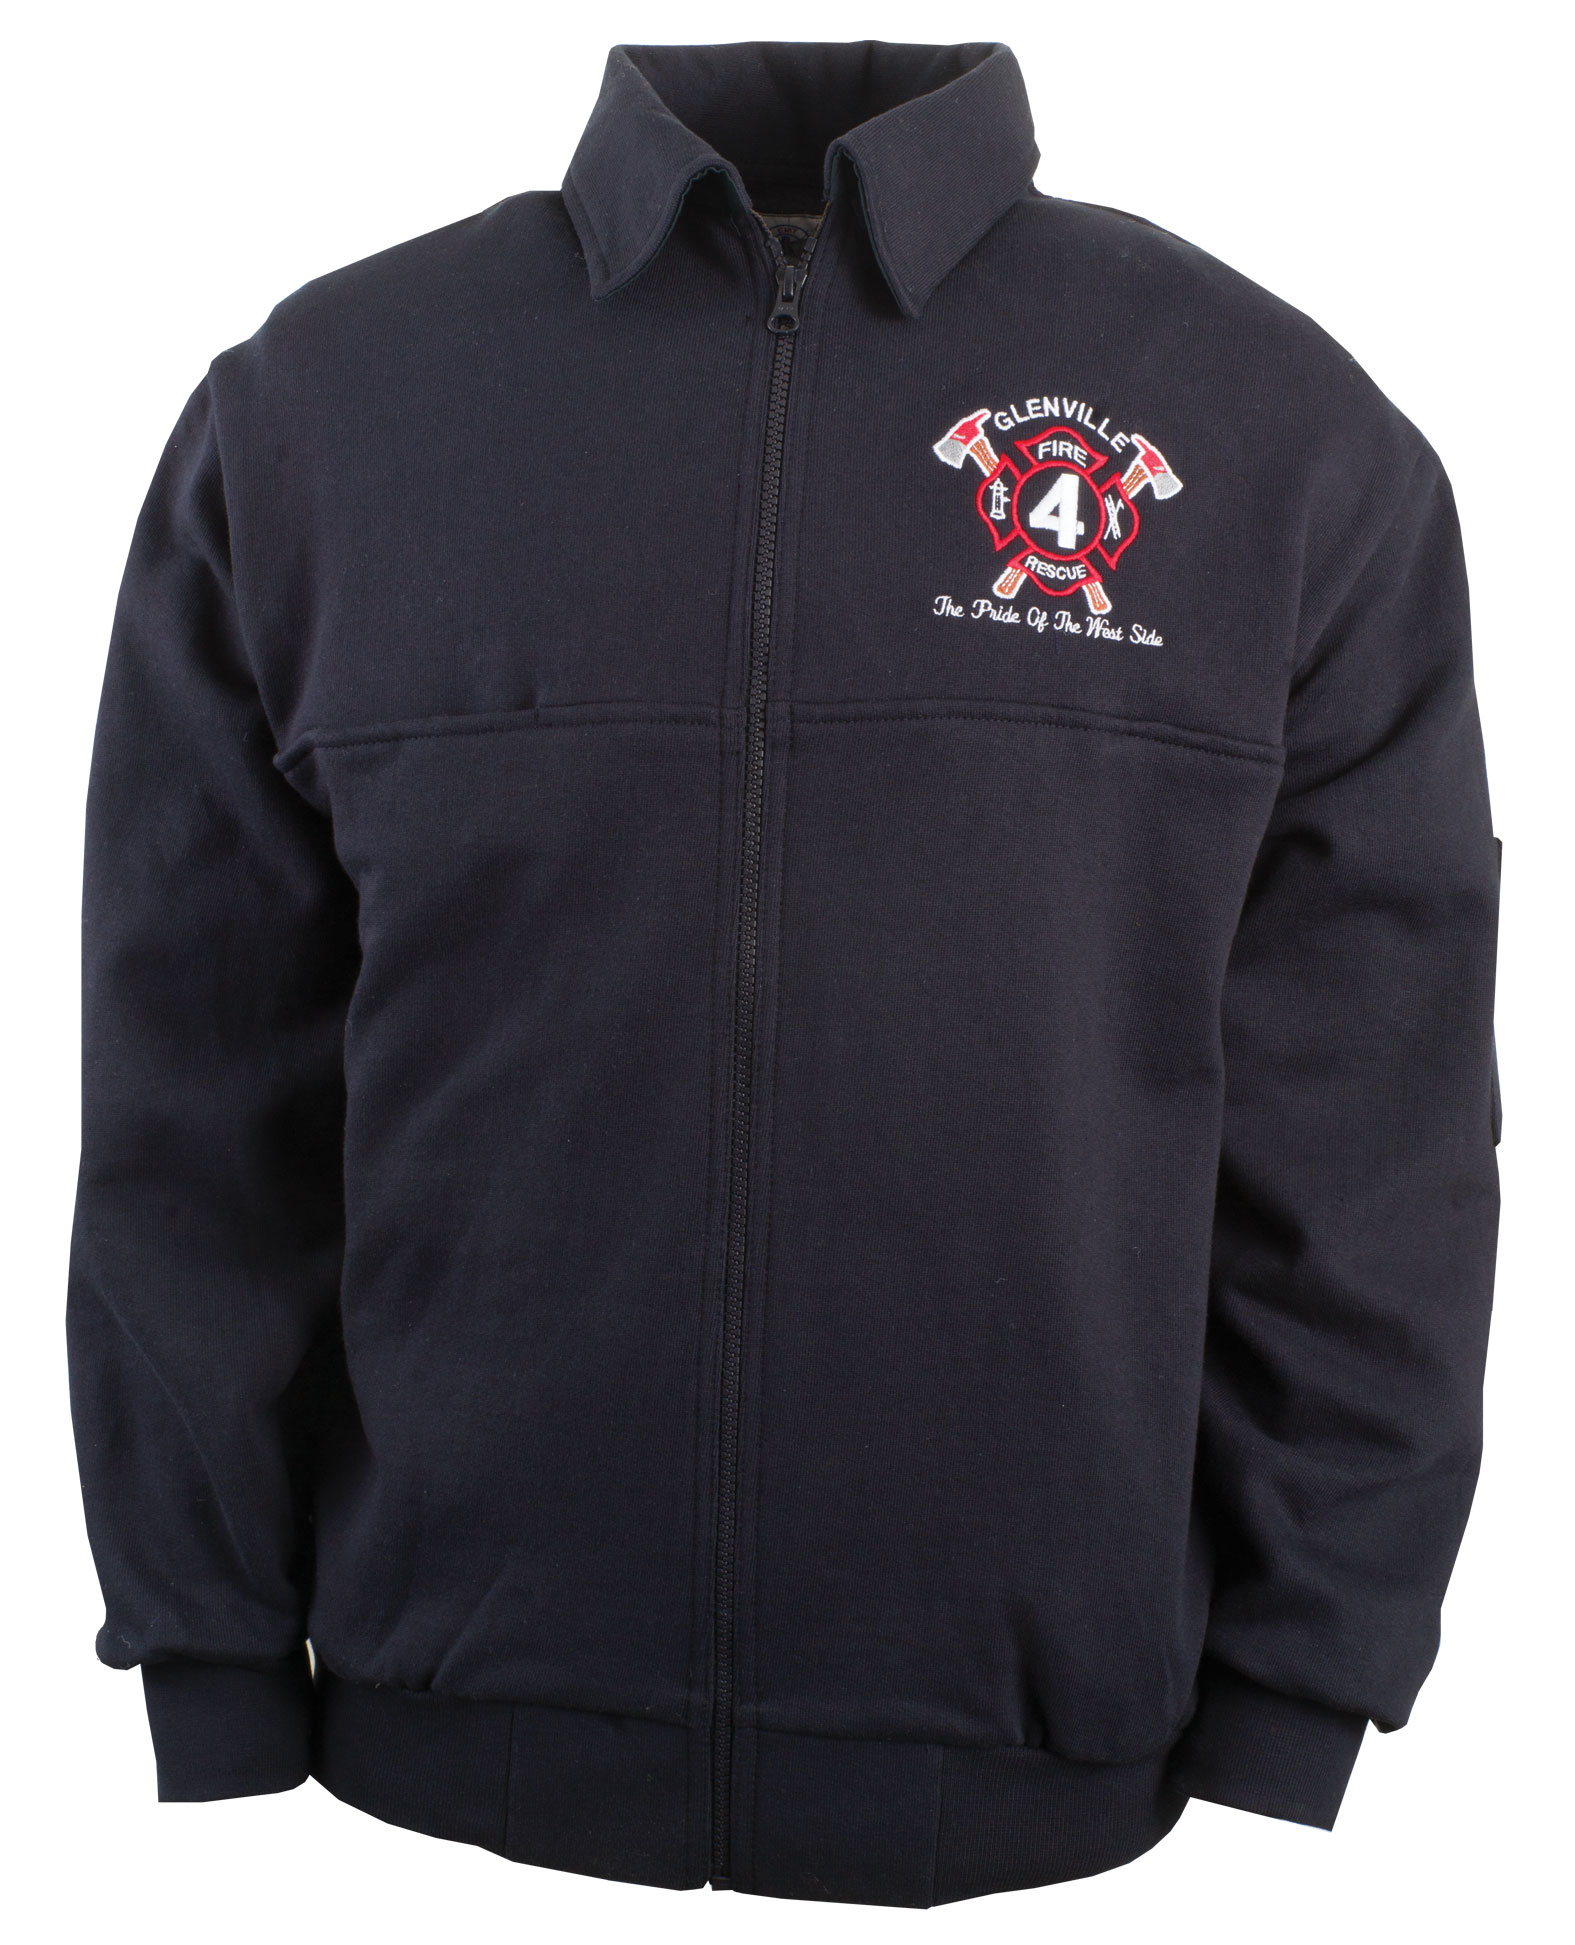 The Firefighters Full Zip Workshirt